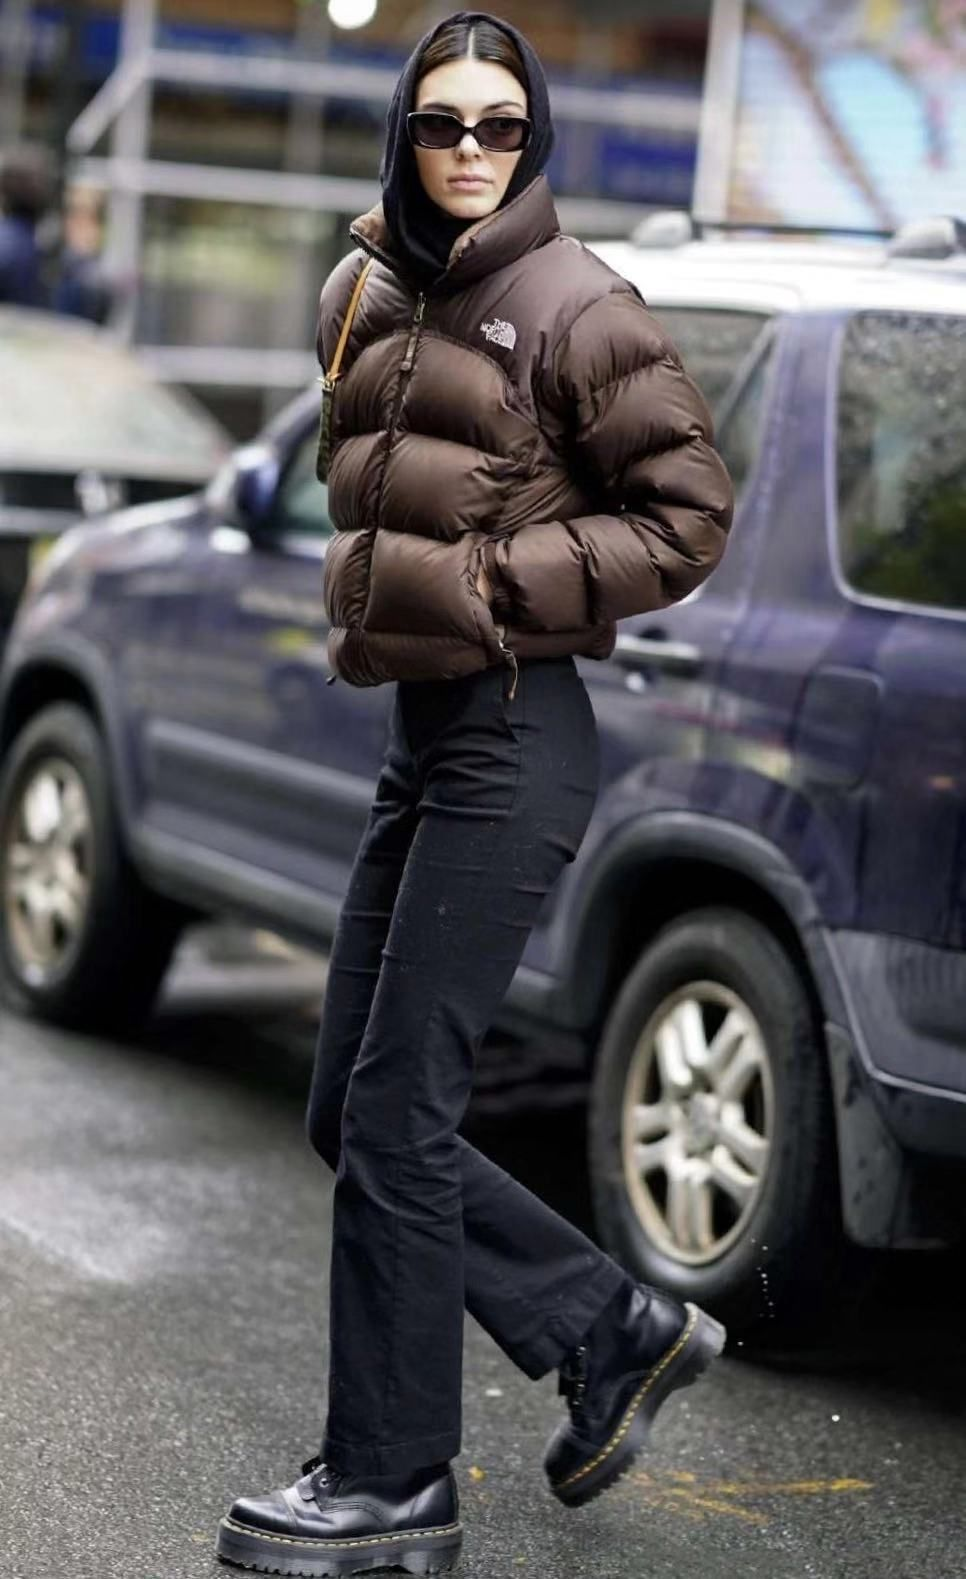 Kendall Jenner In Nyc Streetstyle Streetwear Ootd Top The North Face Shoes Dr Martens North Face Jacket Outfit Brown North Face Jacket North Face Jacket [ 1579 x 966 Pixel ]